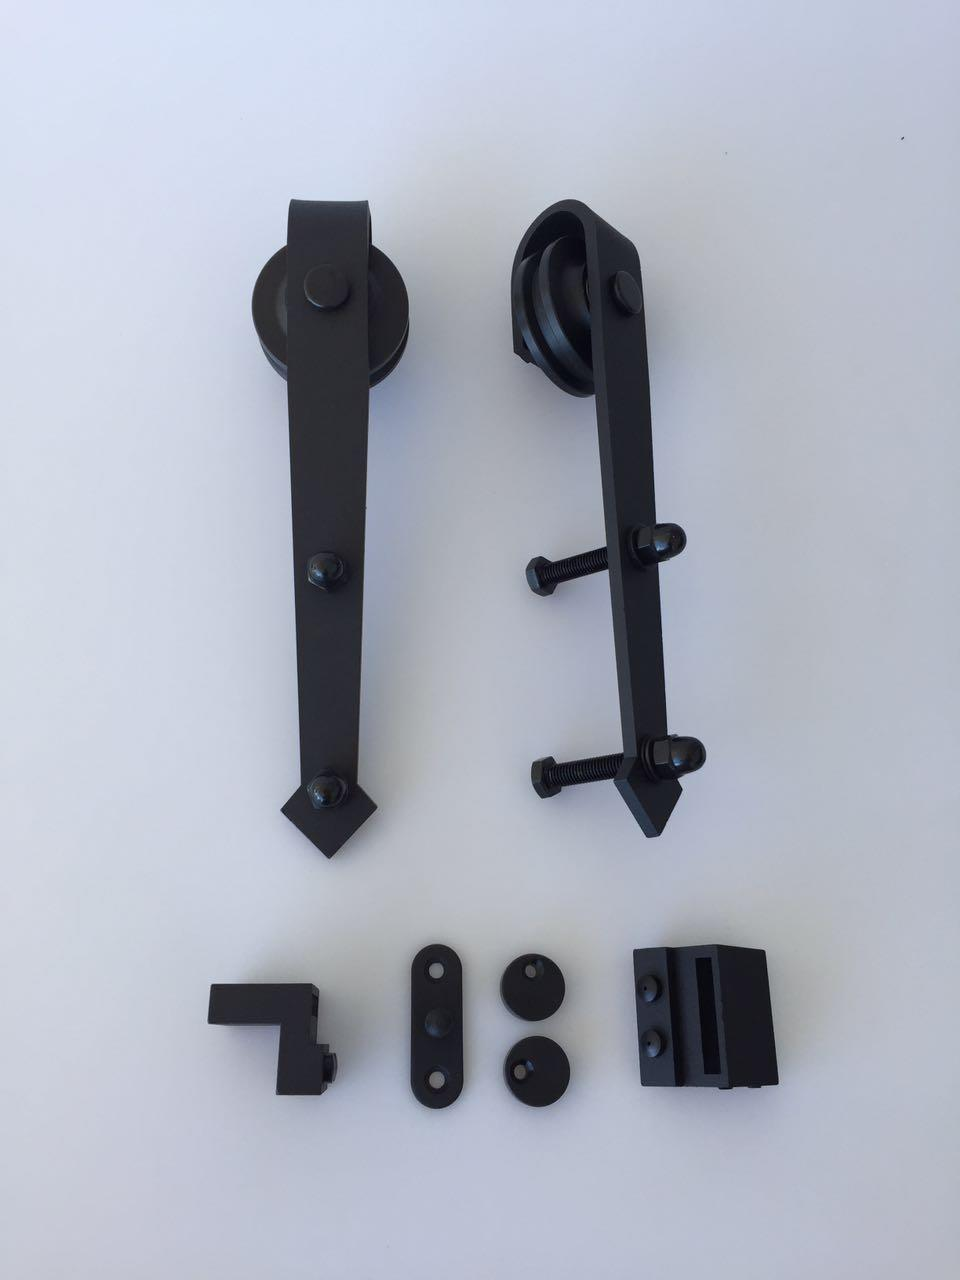 Sliding barn door rollers kits b06 ideal barn door australia for Barn door rollers only